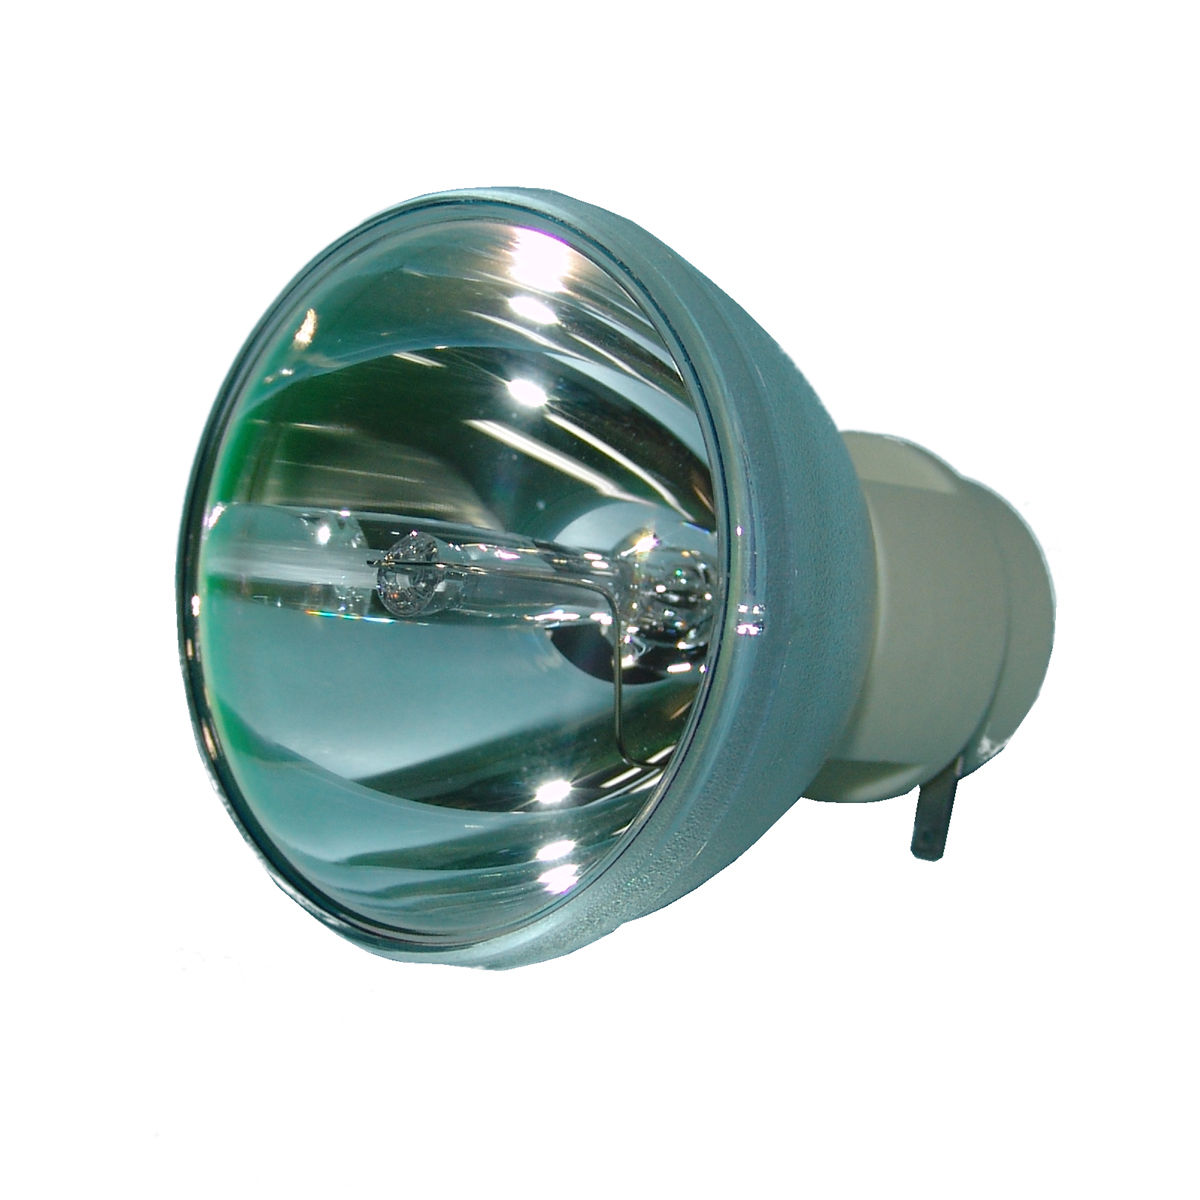 SP-LAMP-087 for Infocus IN120A IN120STA IN2120A IN122A IN124A IN124STA IN126A IN126STA IN2124A IN2126A Projector Lamp Bulb sp lamp 087 replacement projector lamp for infocus in124a in124sta in126a in126sta in2124a in2126a